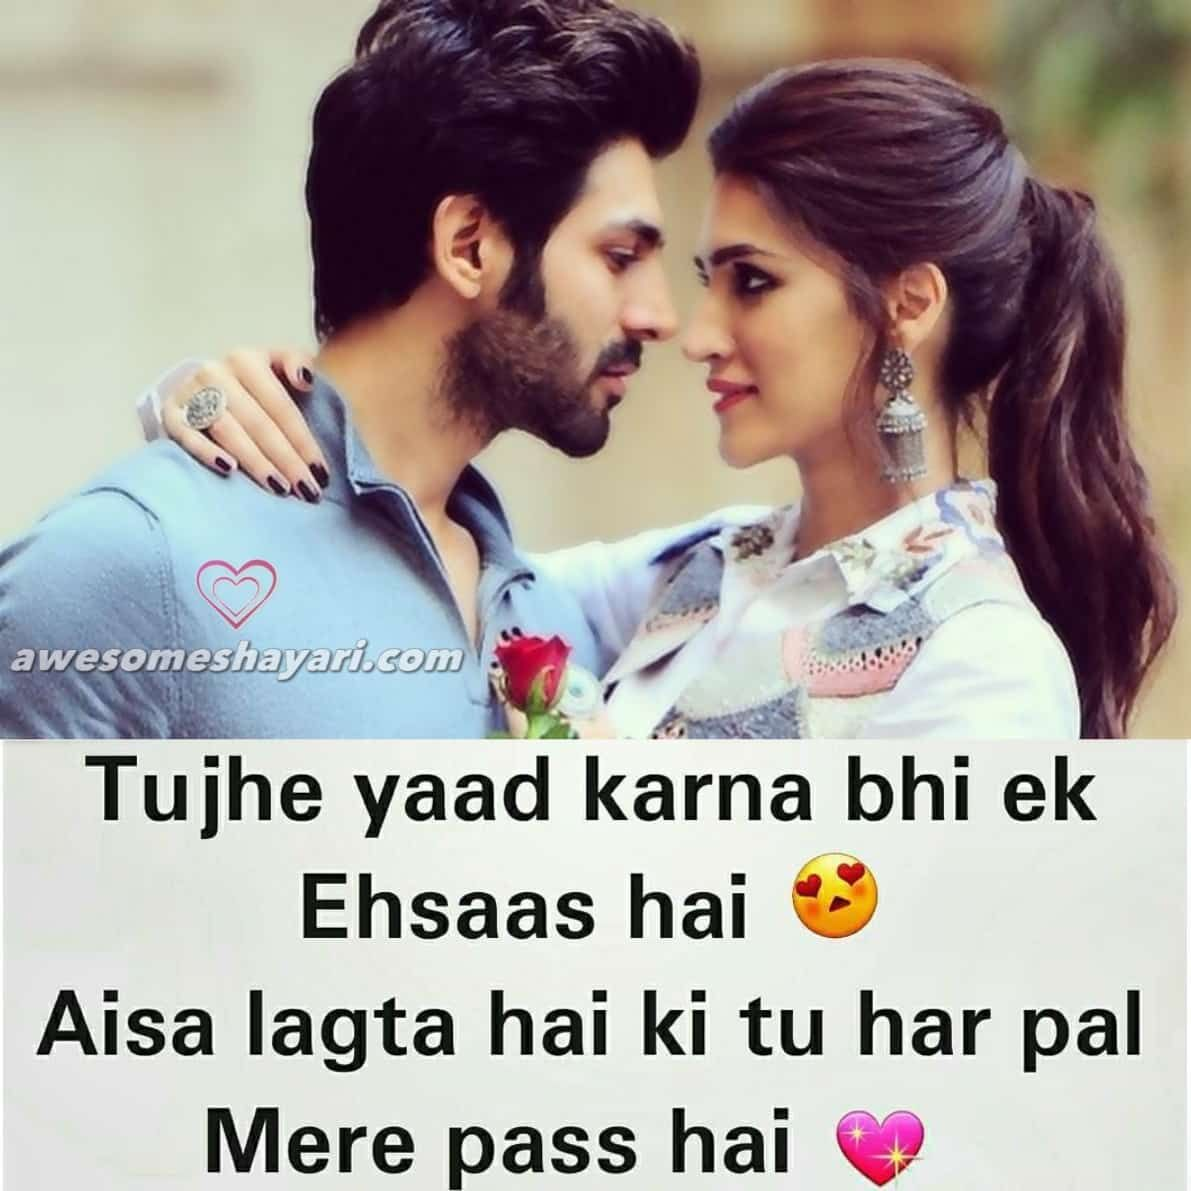 Love Shayari Images Hd Download Love Hd Images Couples Quotes Love Cute Love Quotes